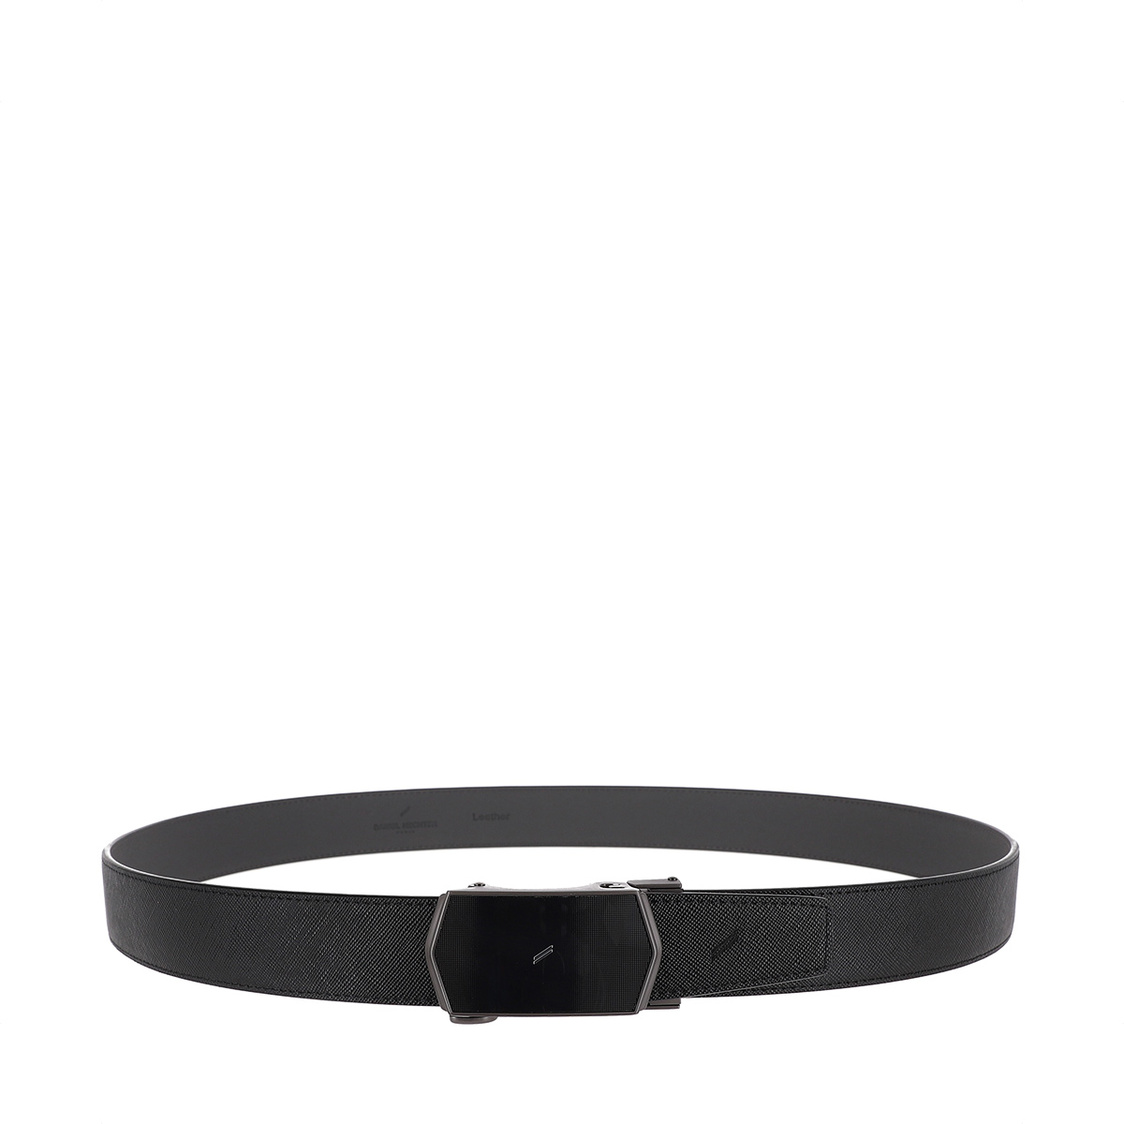 2-way Leather Auto Lock Belt 115cm in Black